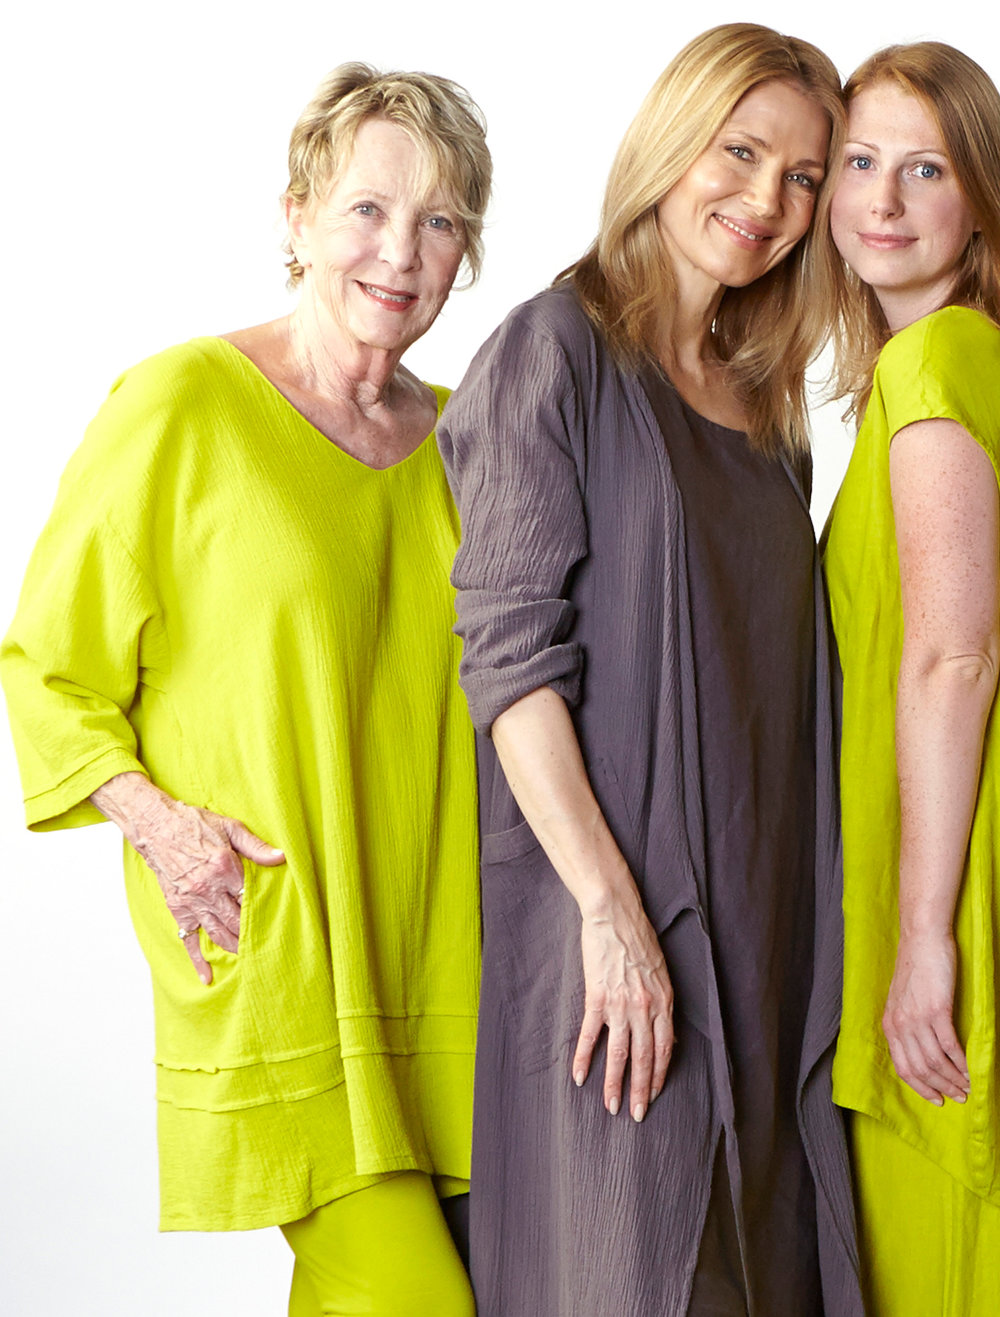 Jude Tunic in Limoncello, Bronte Wrap Dress in Earl   Cotton Gauze,  Louie Dress in Earl Light Linen, Amy Tunic, Oliver Pant in Limoncello Light Linen